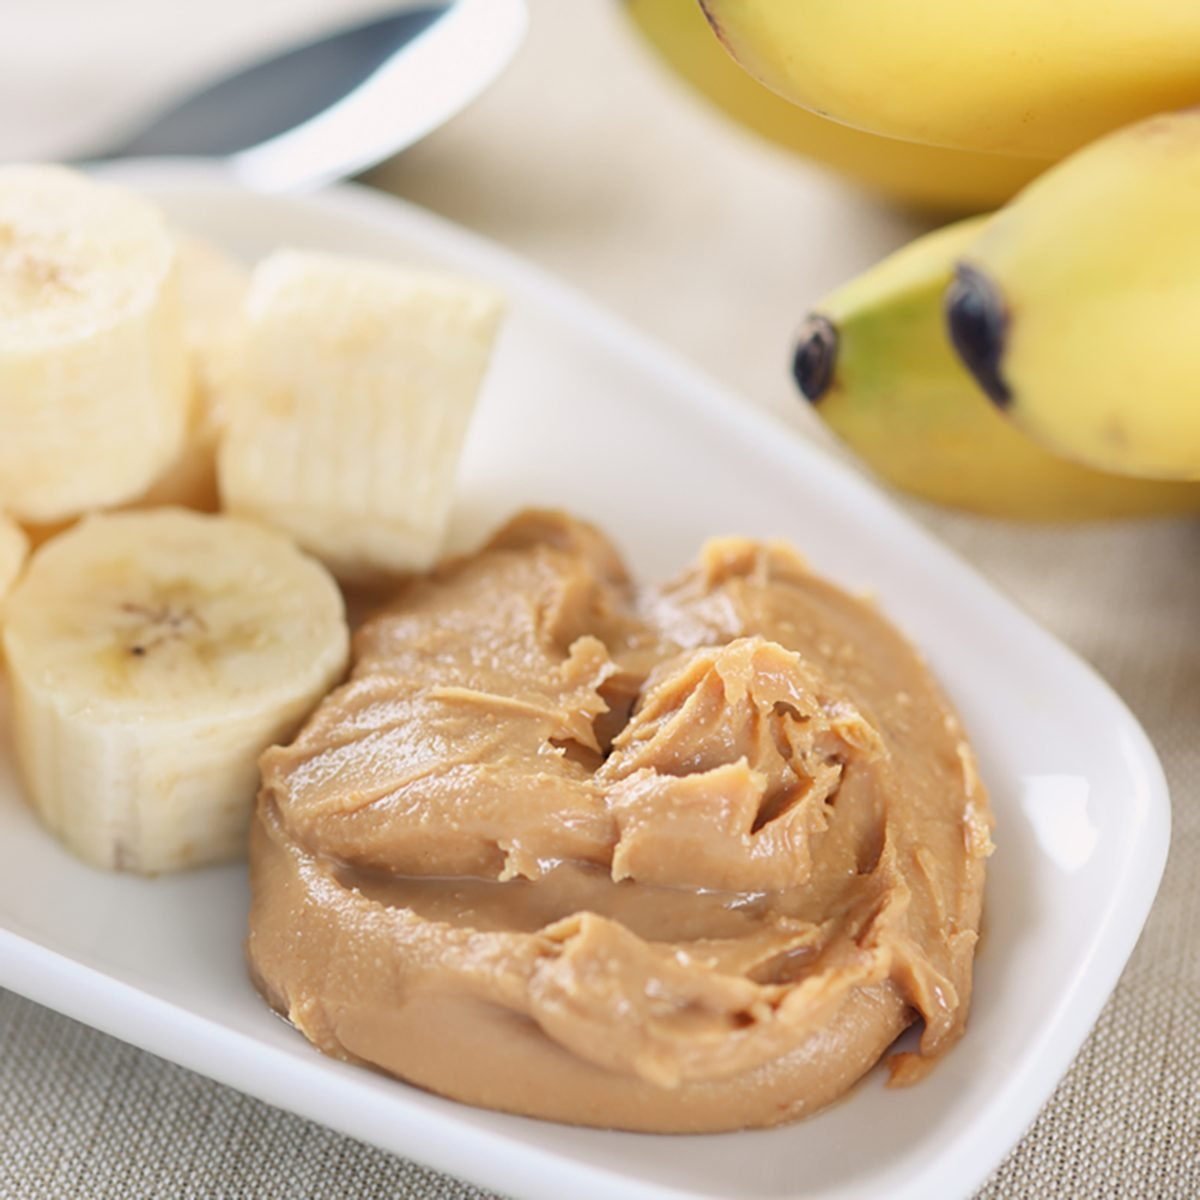 Homemade peanut butter and bananas. Homemade peanut butter ingredients: peanuts (roasted, unsalted, shelled), peanut oil, honey. No salt, no sugar.